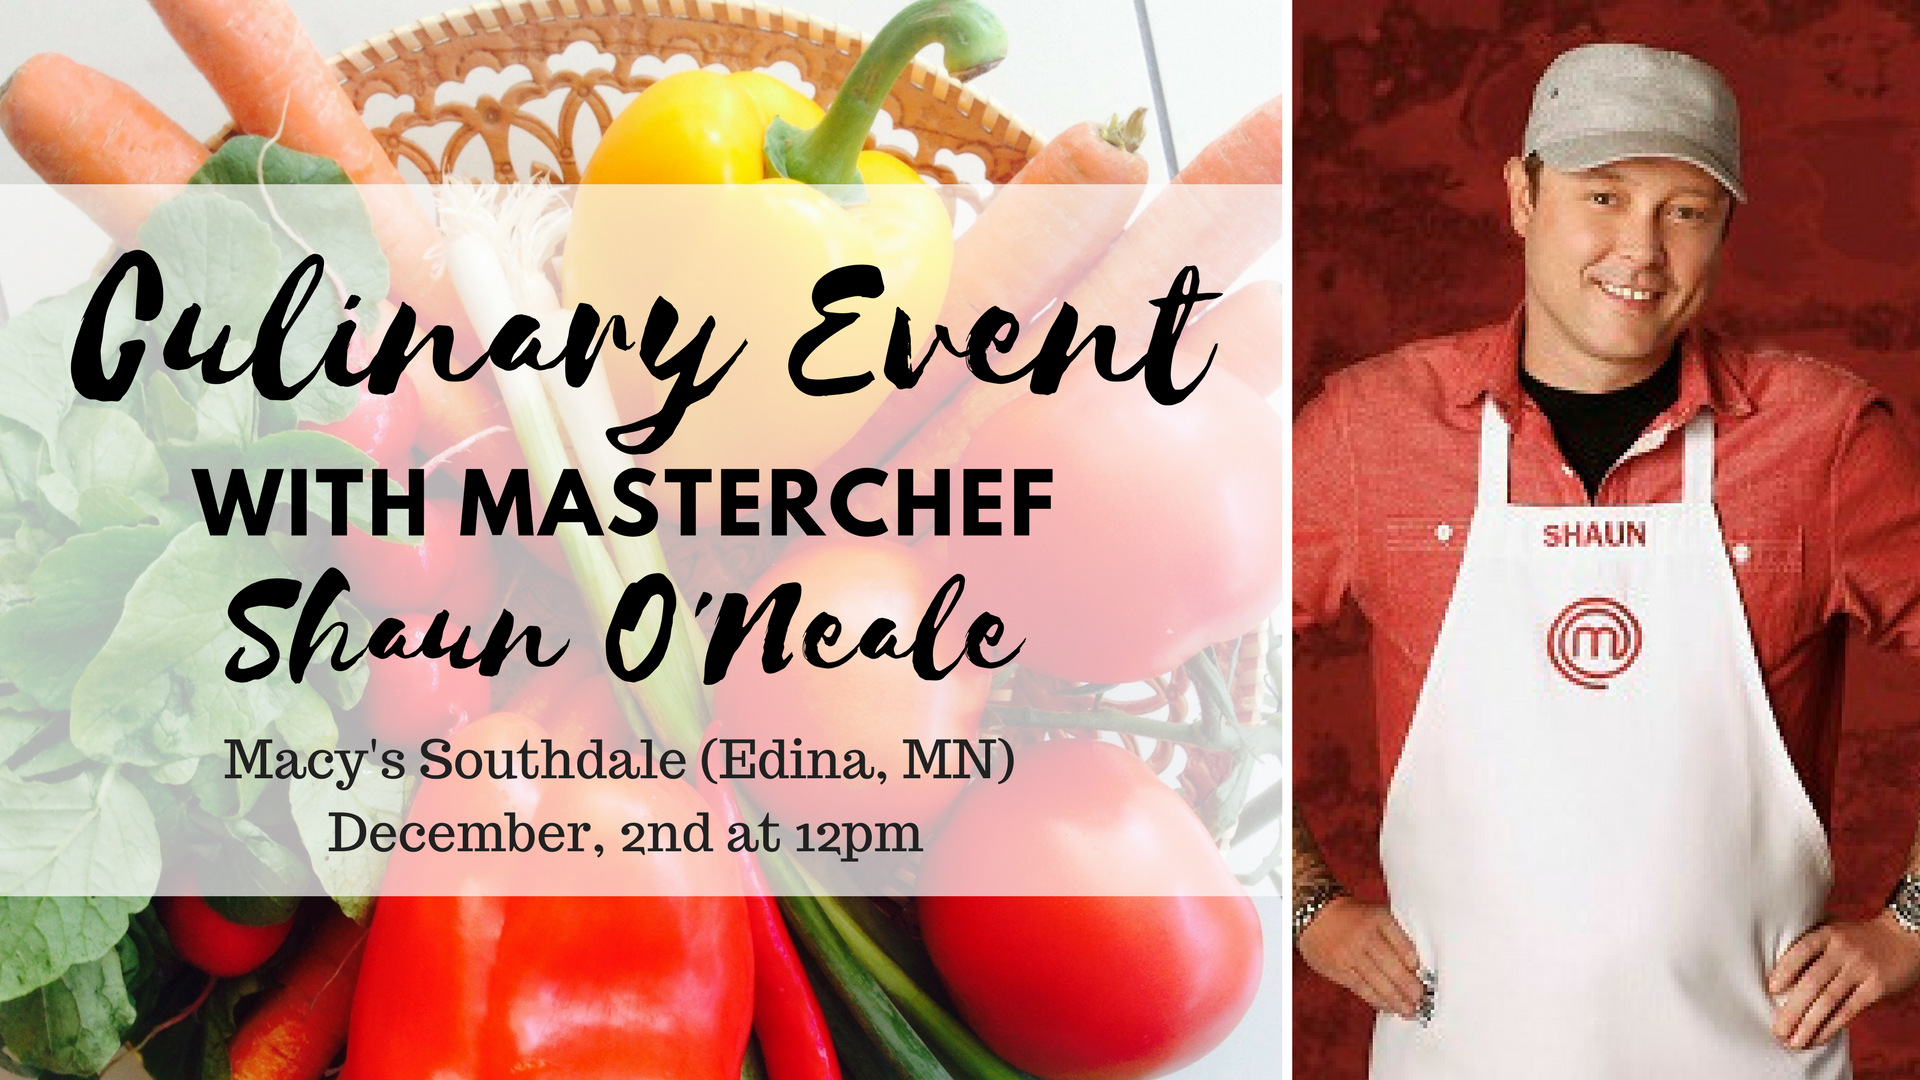 @mnhousewives's cover photo for 'INVITE: MasterChef Shaun O'Neale to Give Demo at Macy's Southdale - Real Housewives of Minnesota'